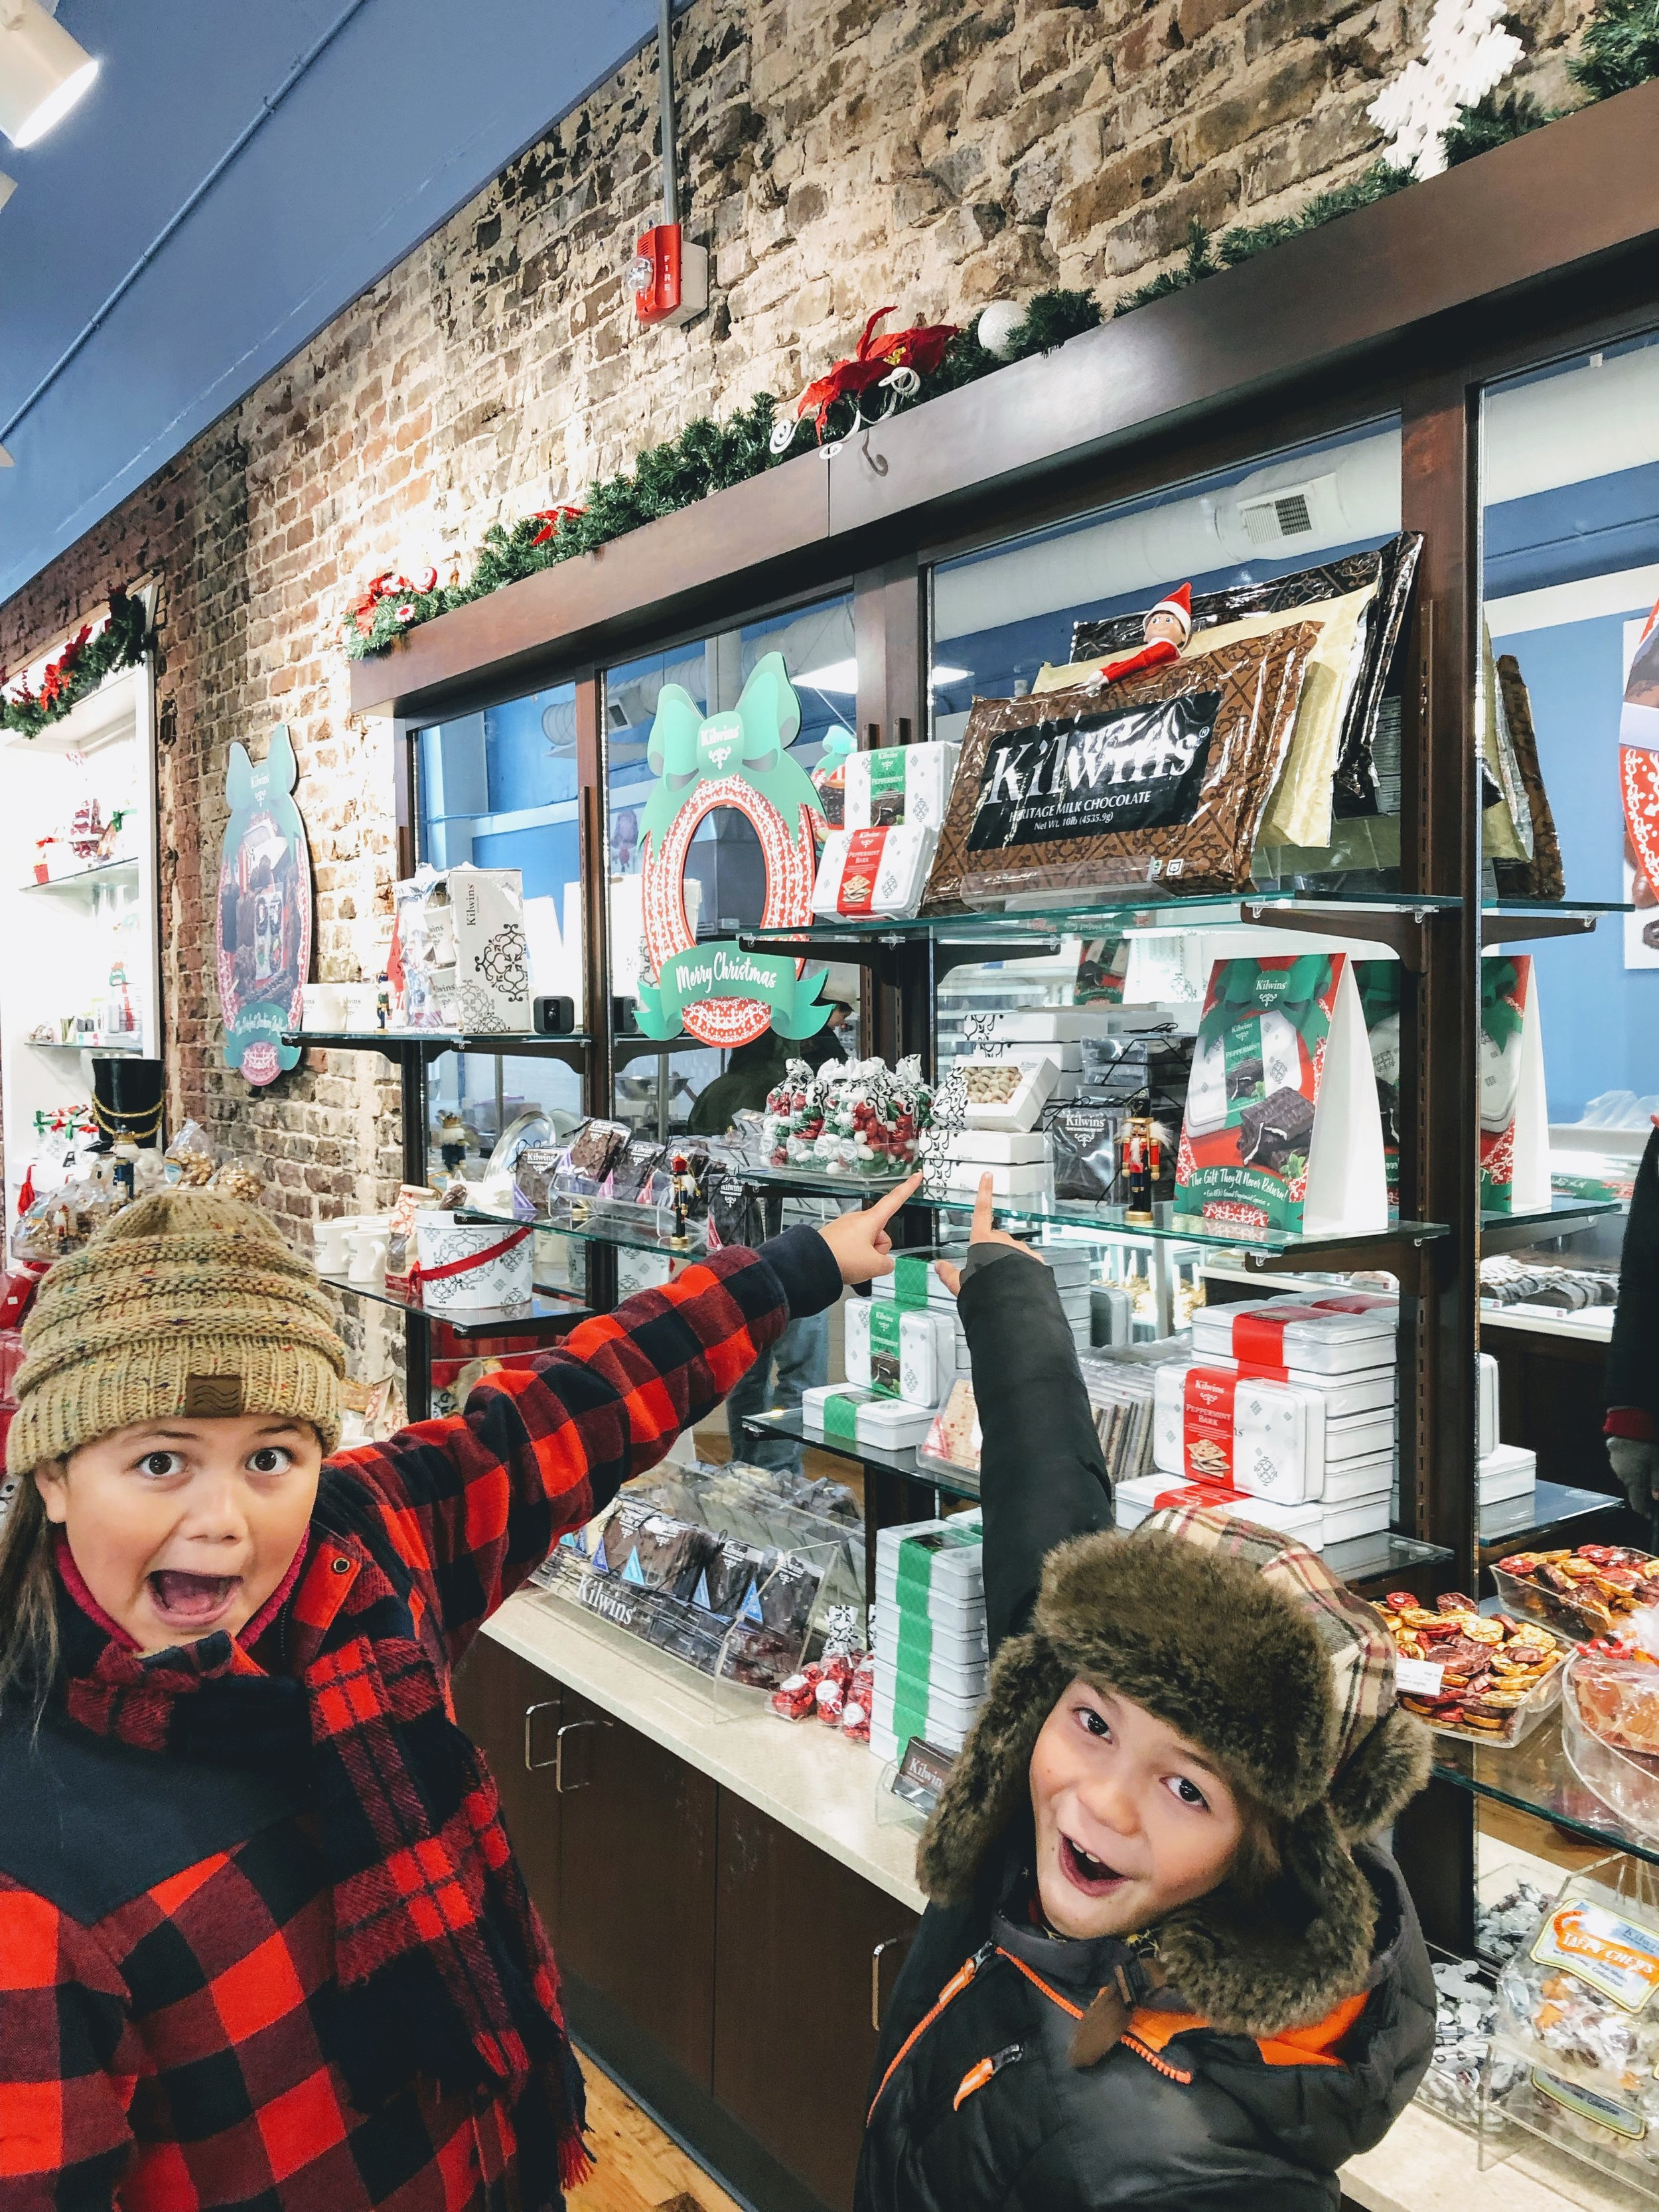 Things to do in Knoxville this Christmas, Kilwins